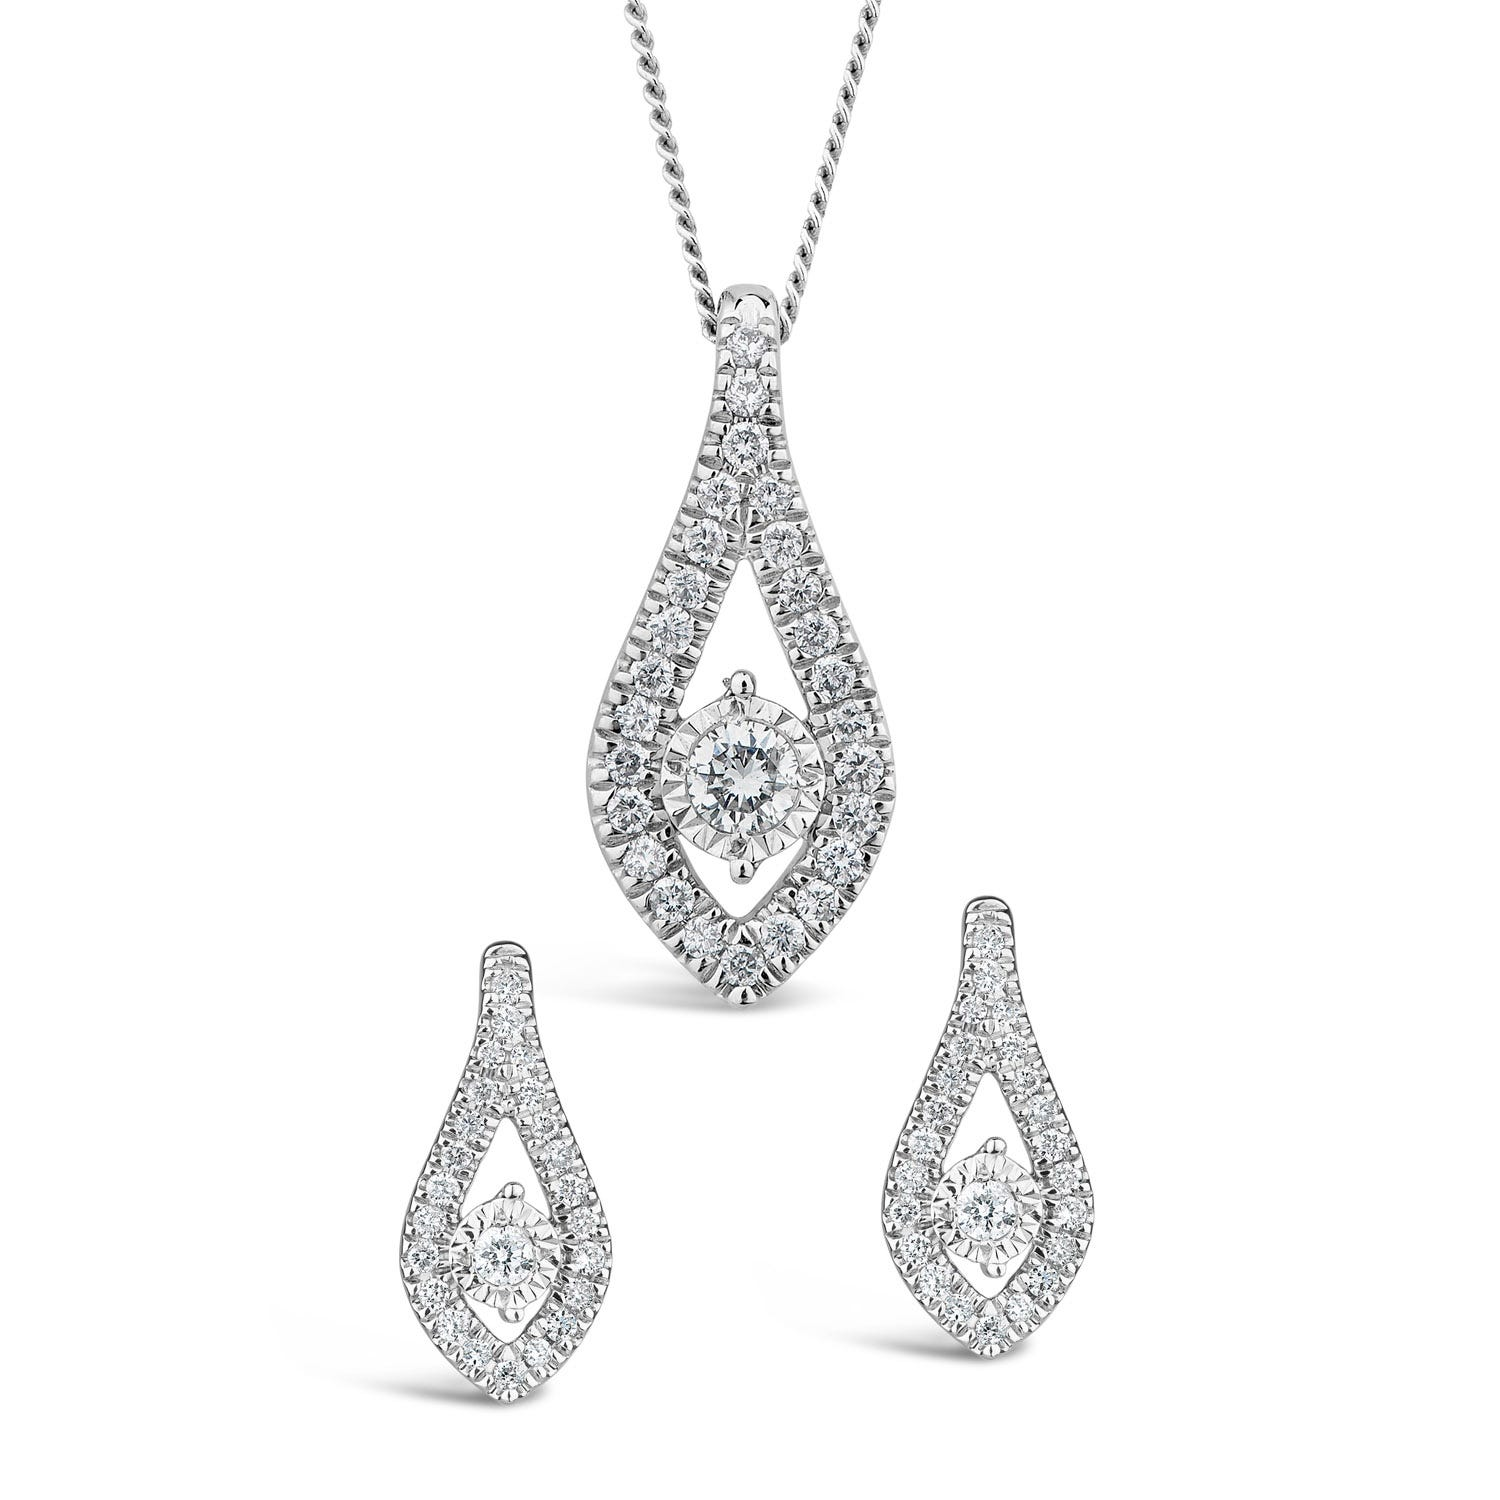 9ct White Gold 0.34ct Diamond Teardrop Earrings & Pendant Set